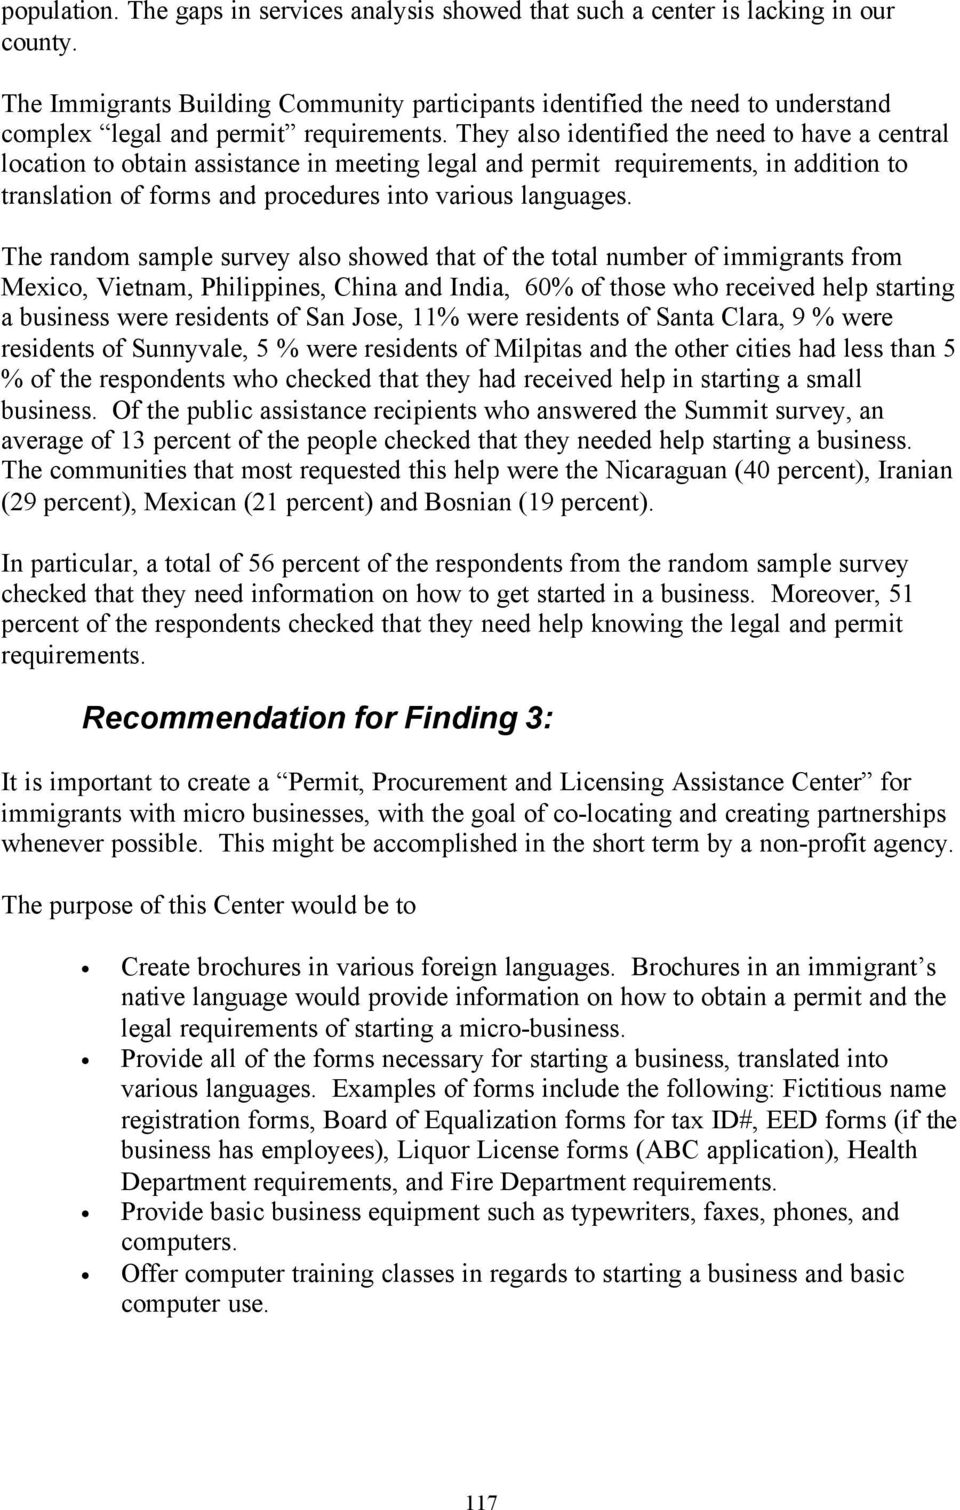 They also identified the need to have a central location to obtain assistance in meeting legal and permit requirements, in addition to translation of forms and procedures into various languages.